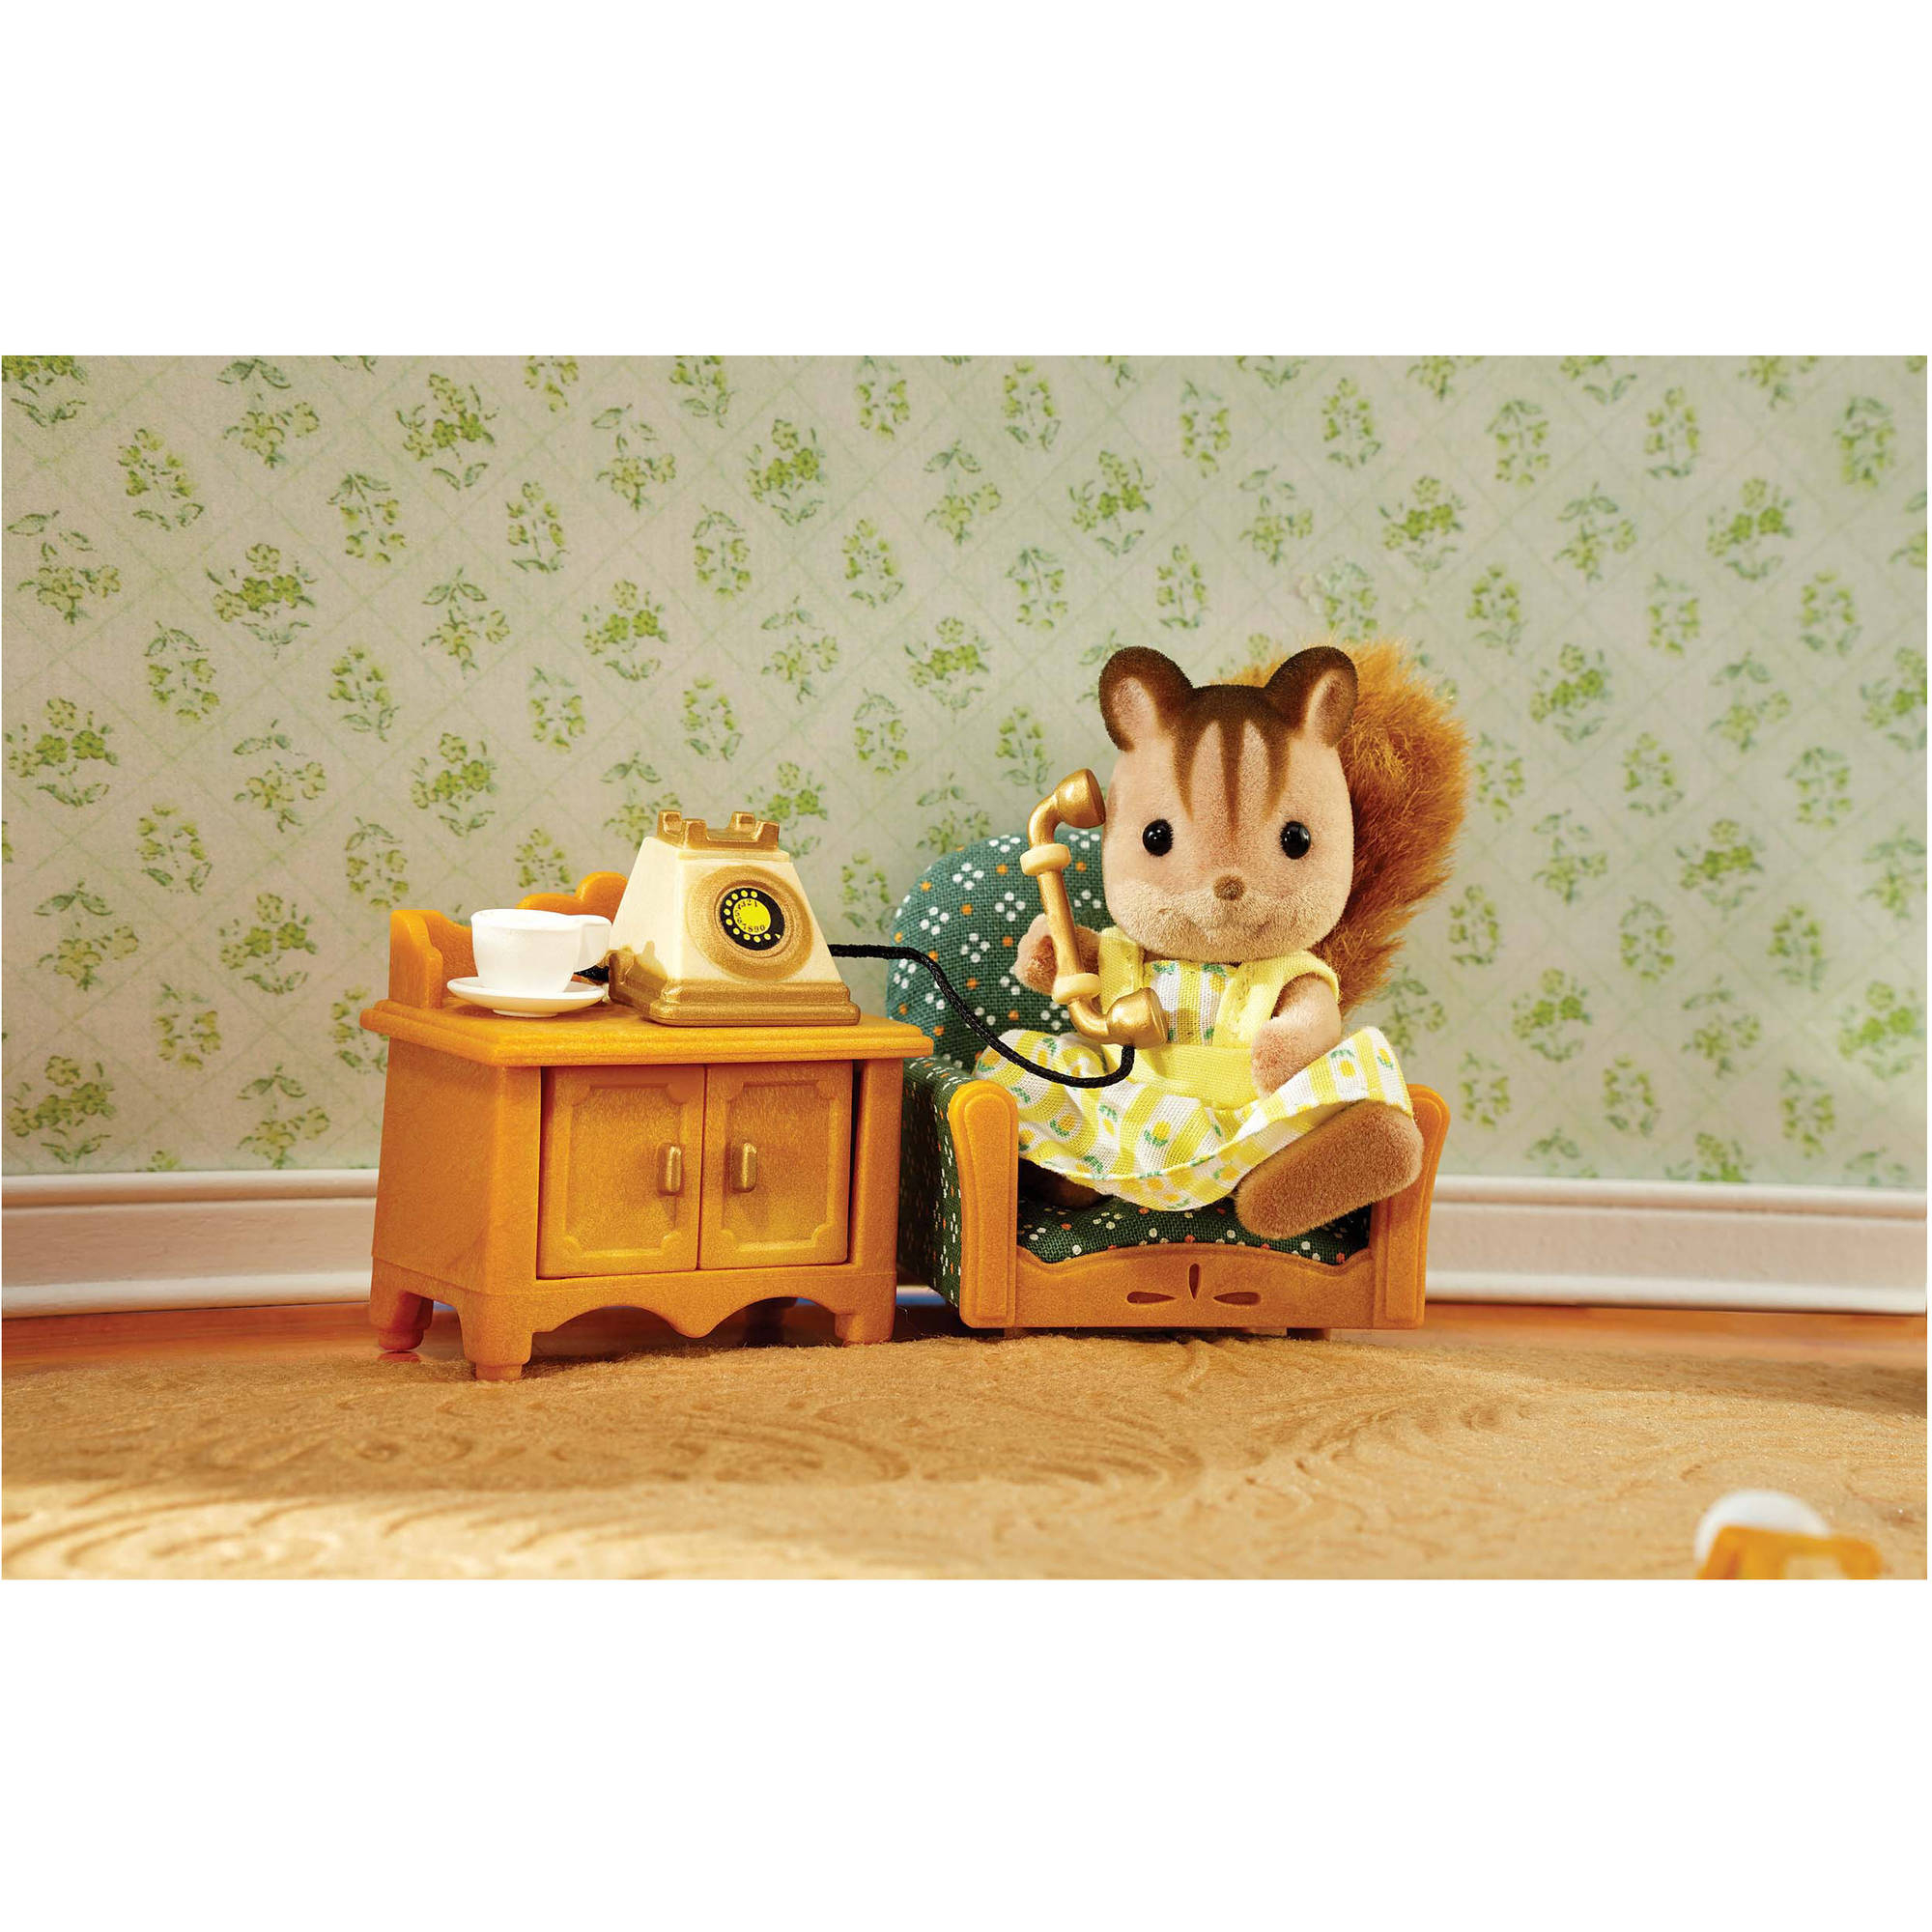 Calico Critters Deluxe Living Room Set Walmart in 13 Some of the Coolest Initiatives of How to Build Calico Critters Deluxe Living Room Set